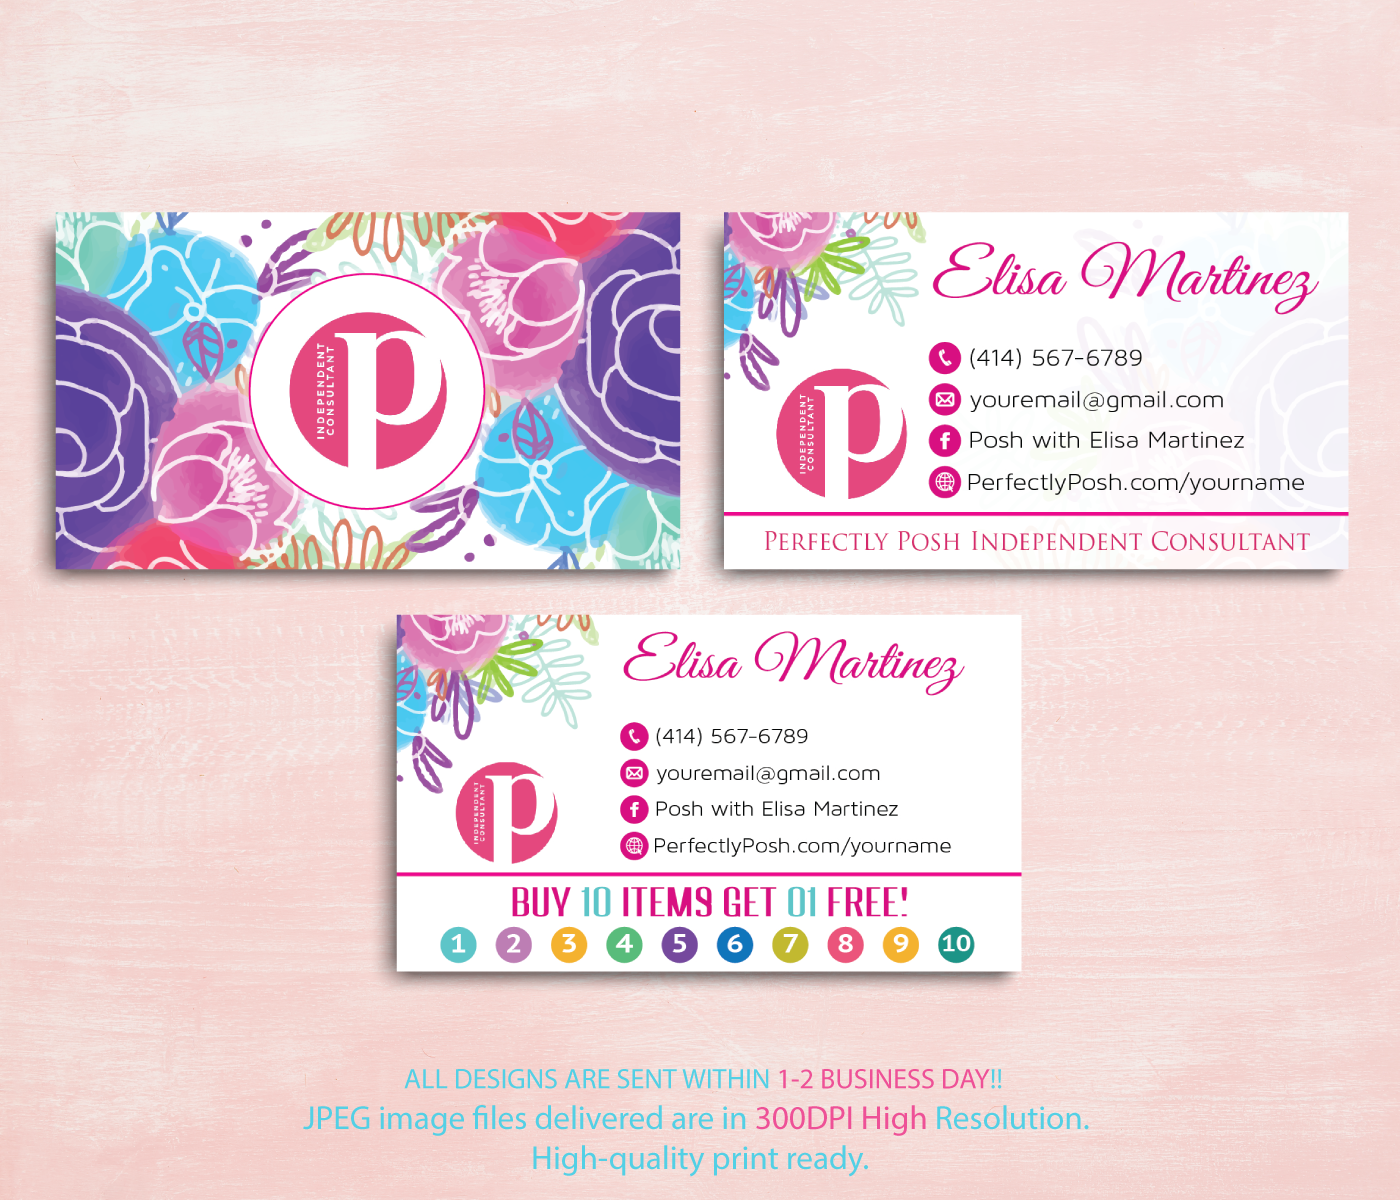 Perfectly Posh Business Cards Perfectly Posh Punch Card Ps07this Design Is A Custom Printabl Perfectly Posh Business Perfectly Posh Consultant Perfectly Posh